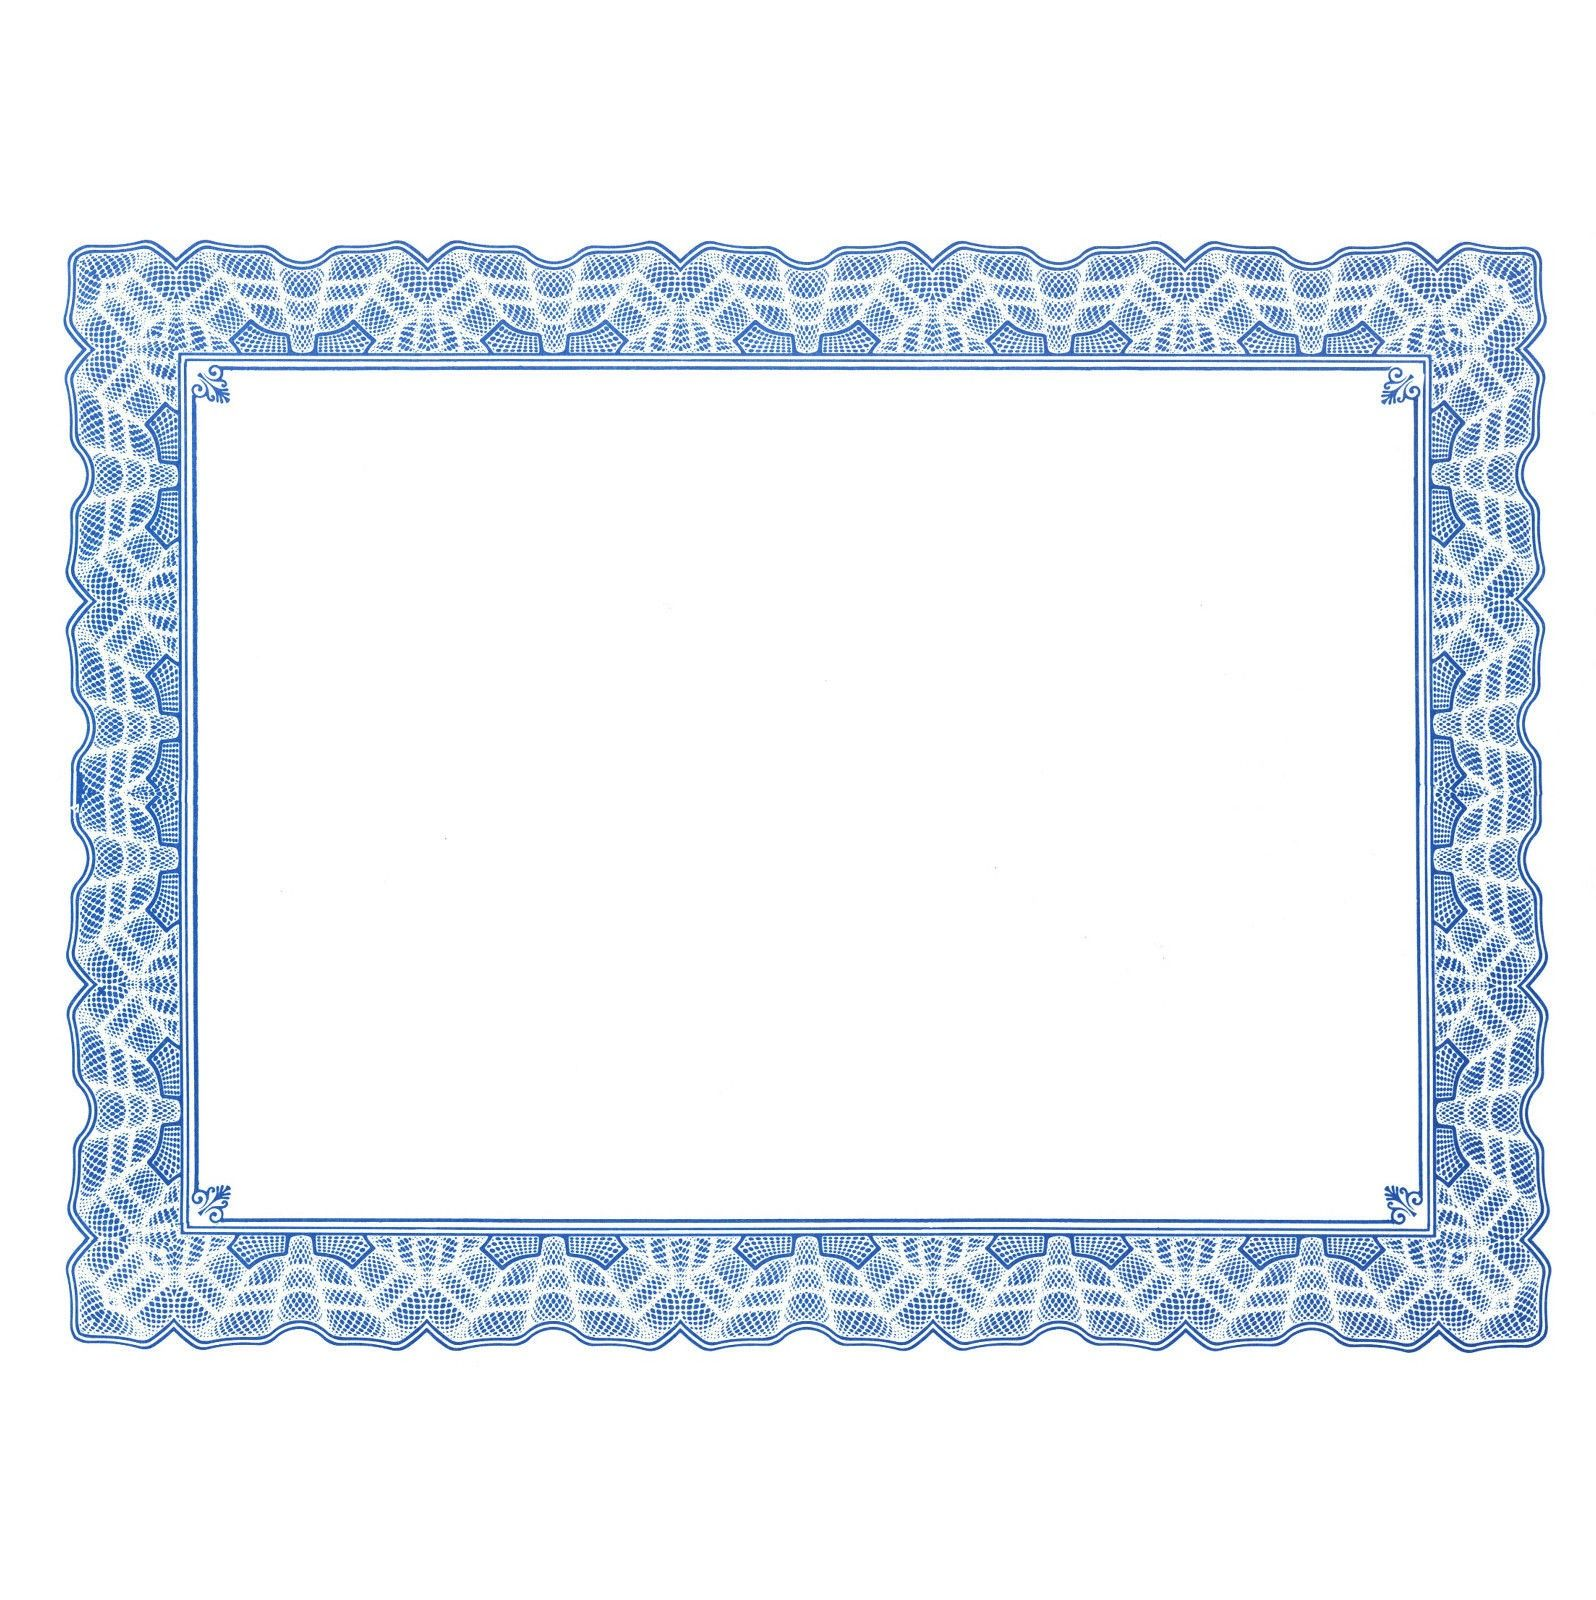 Free certificate border templates for word besttemplates123 best free certificate border templates for word besttemplates123 yadclub